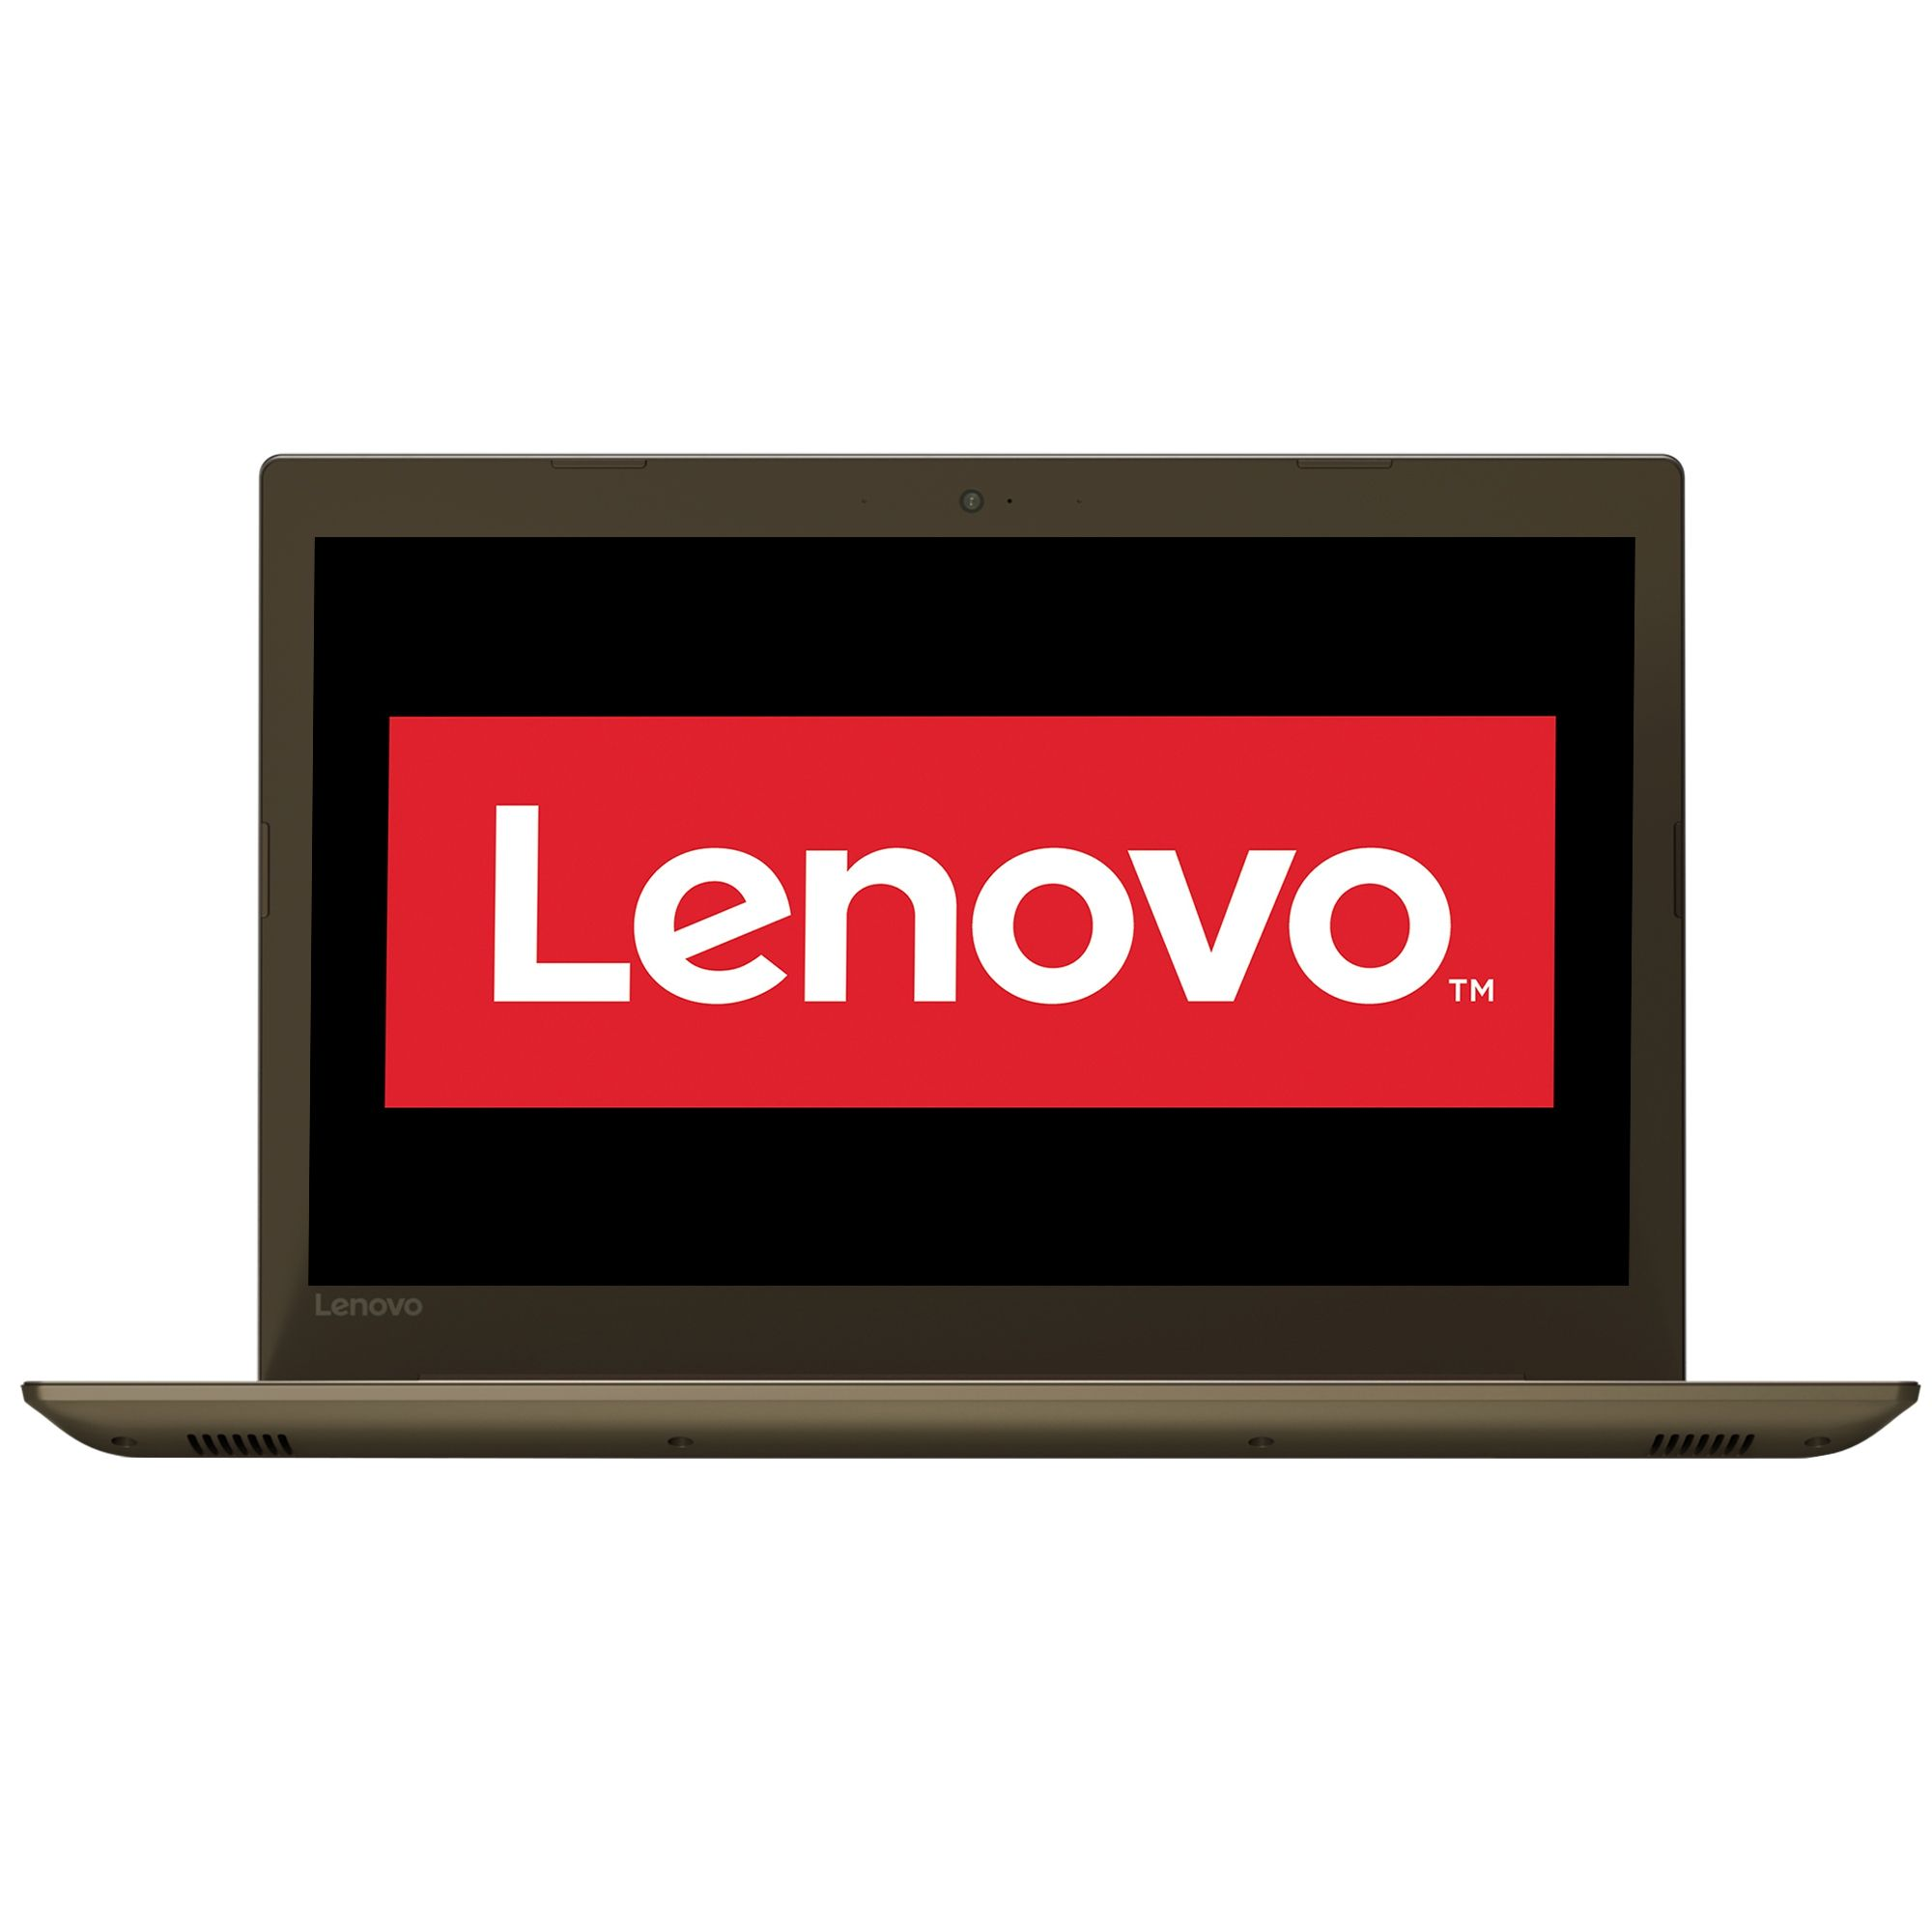 Notebook Lenovo IdeaPad 520S 14 Full HD Intel Core i5-8250U RAM 8GB HDD 1TB FreeDOS Bronz